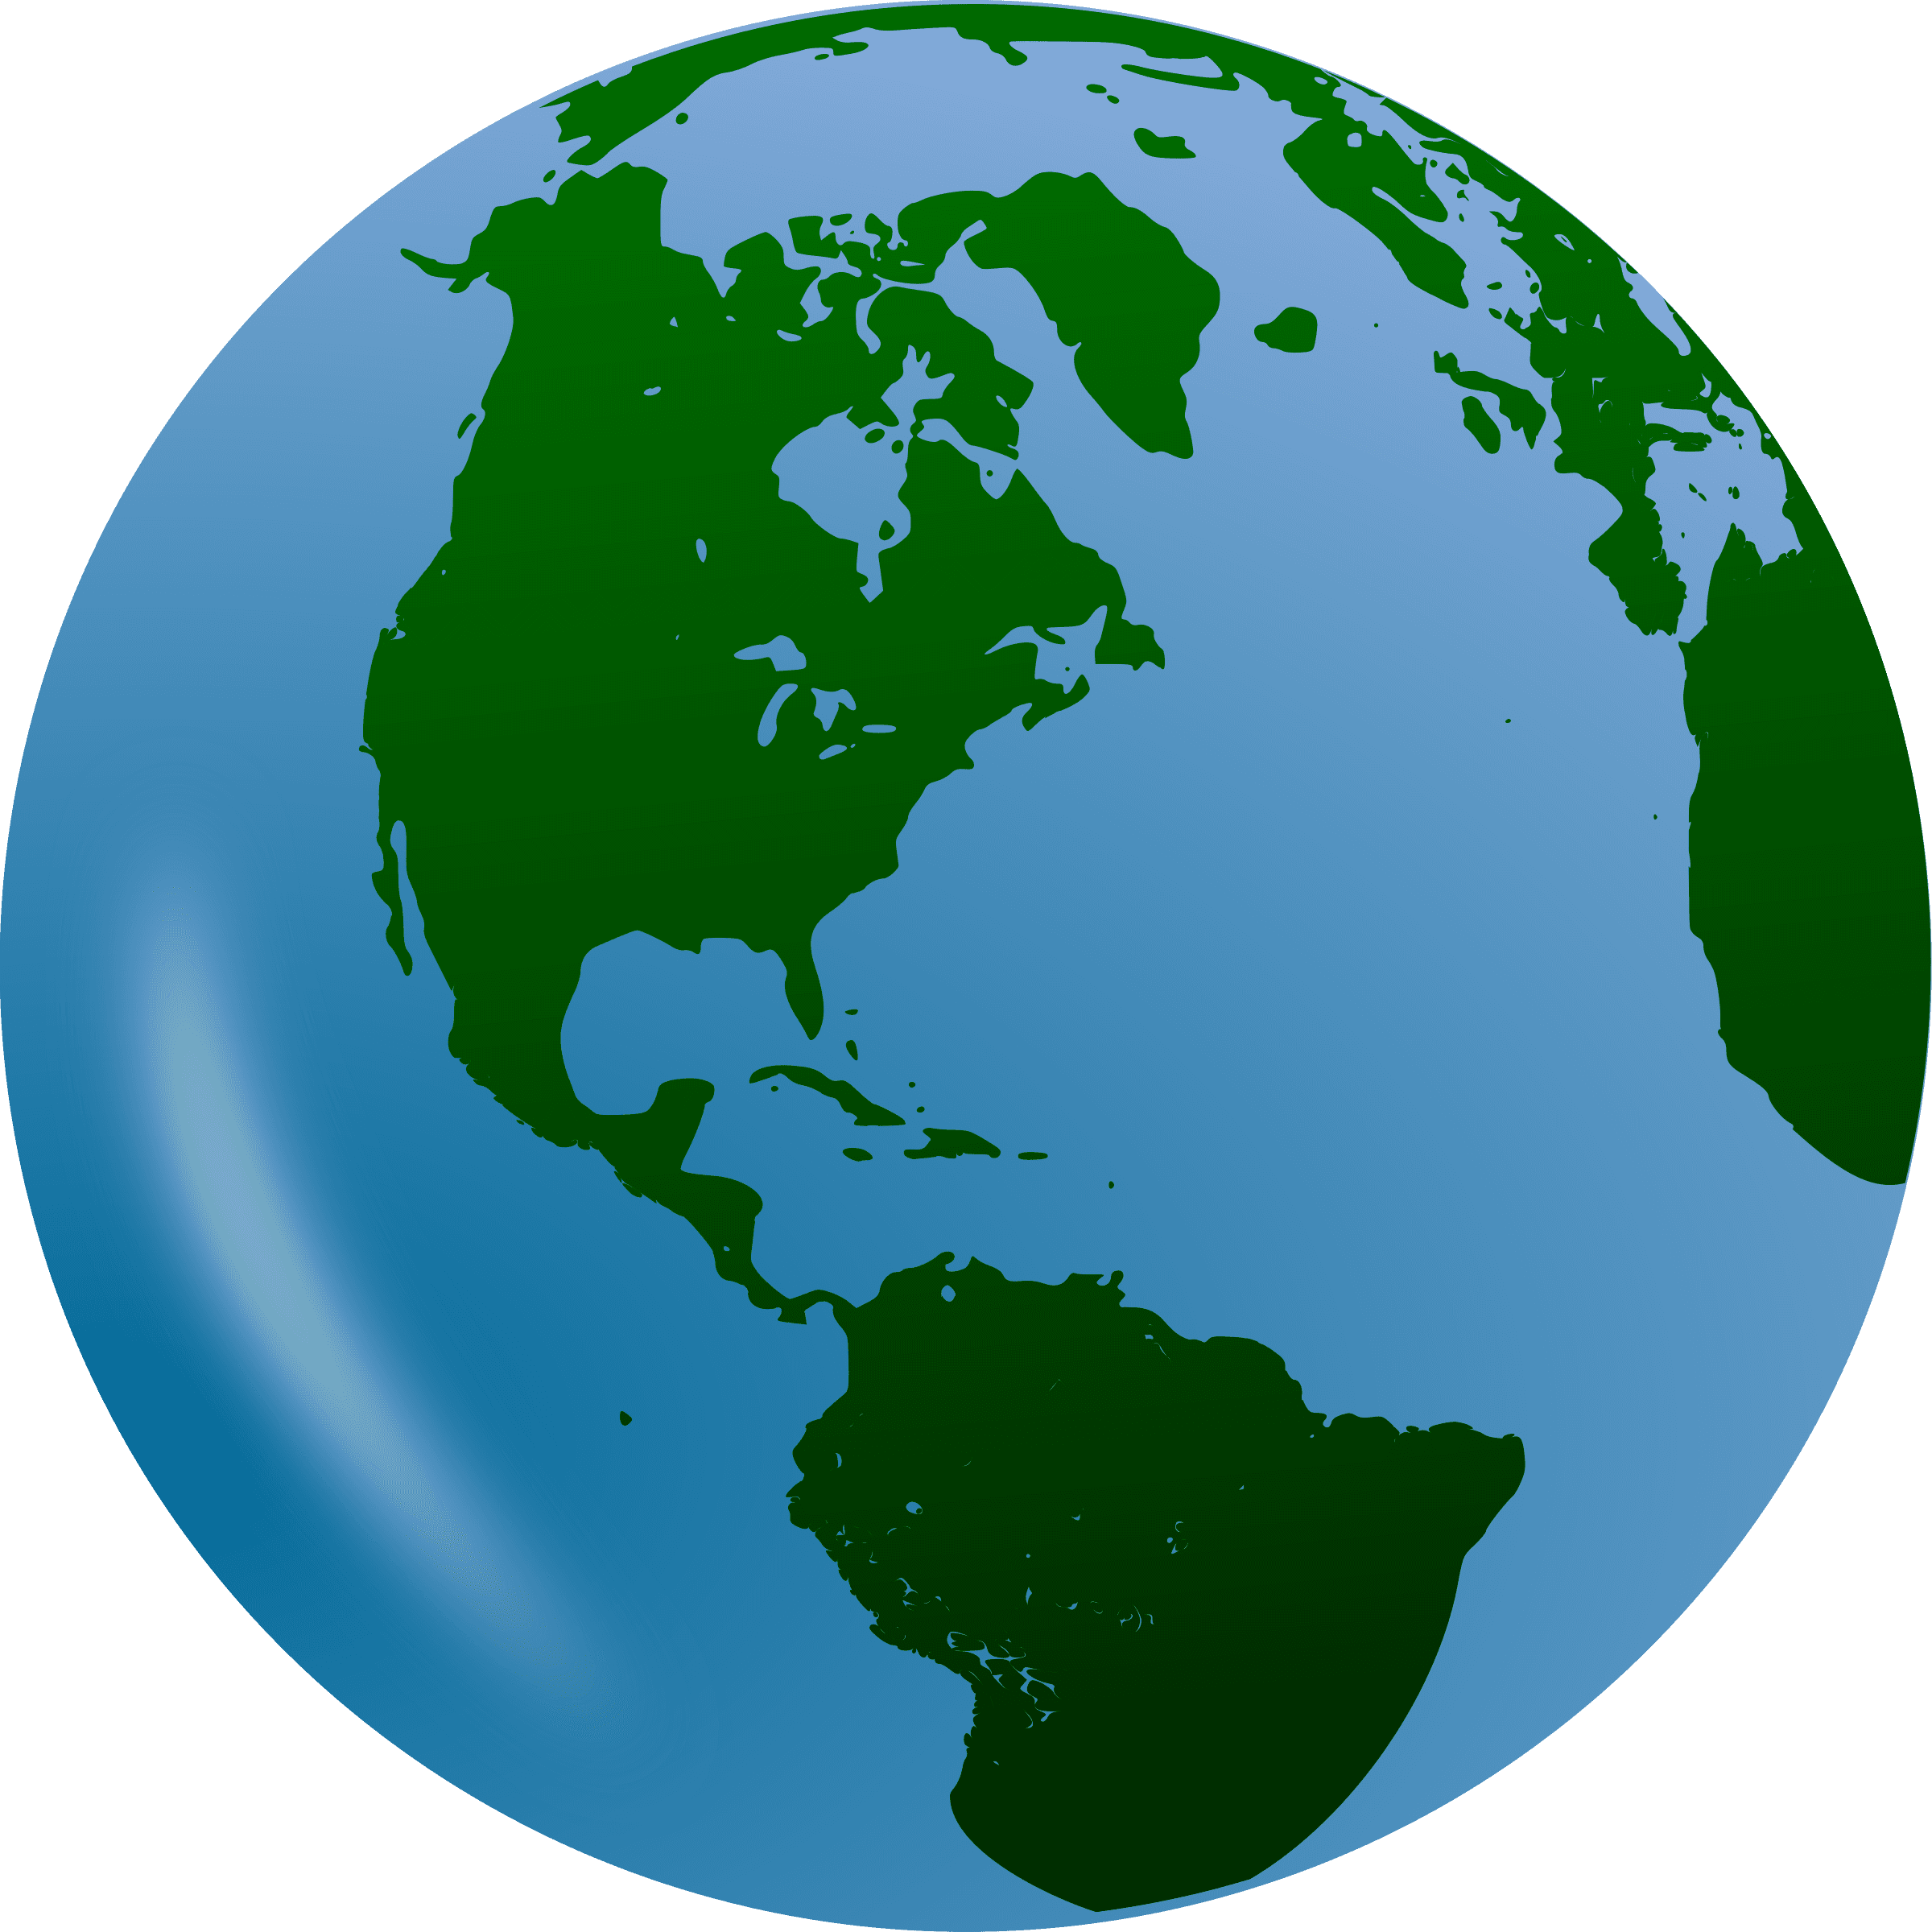 2400x2400 World Clip Art Globe Free Clipart Images 3